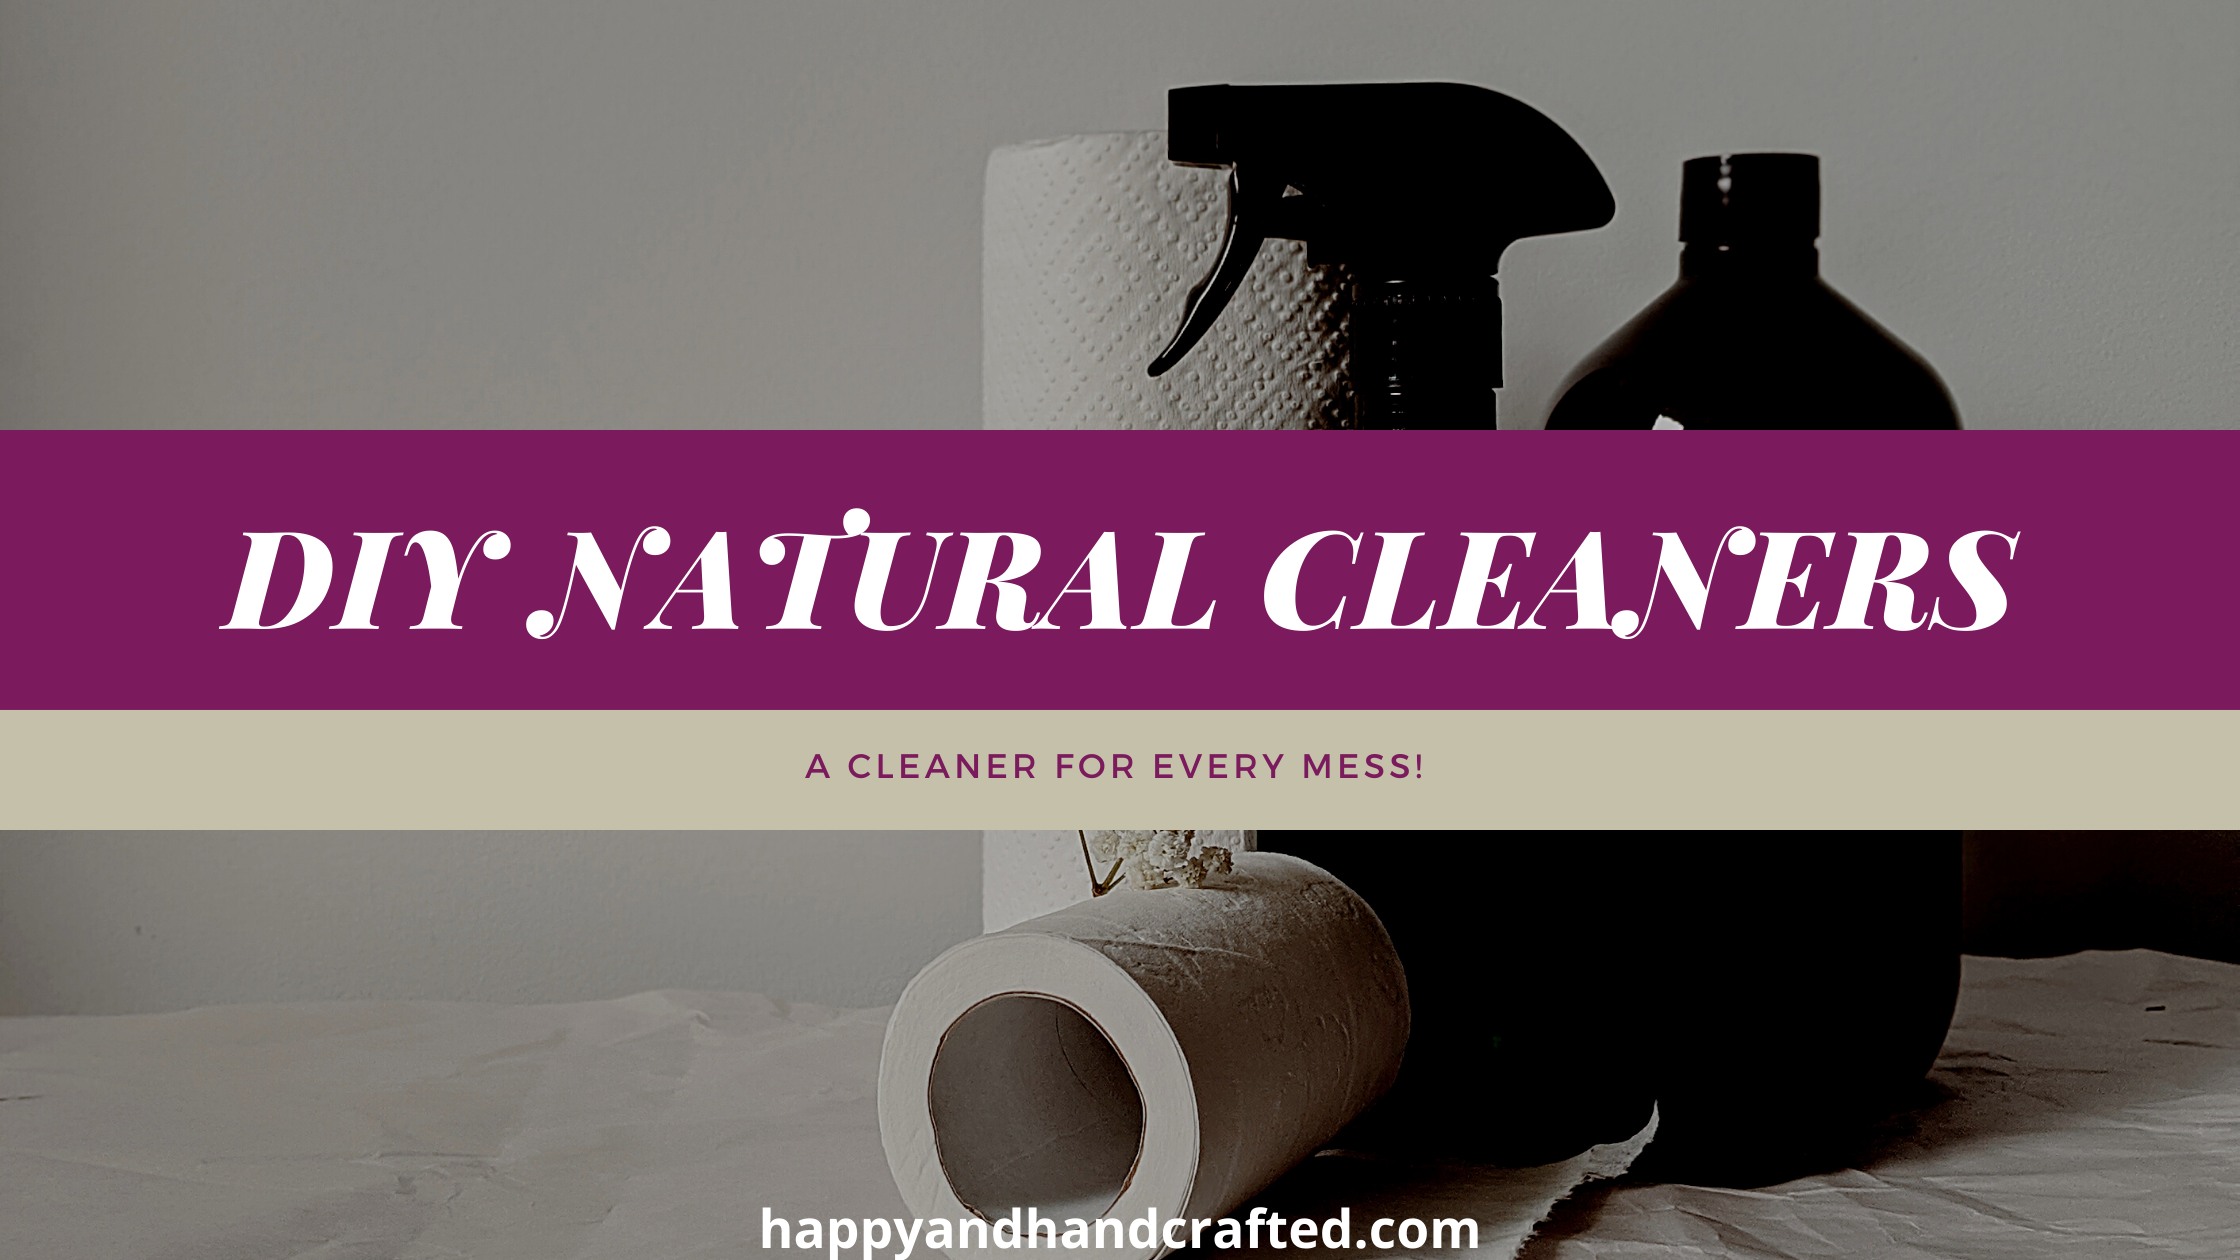 My favorite natural cleaners